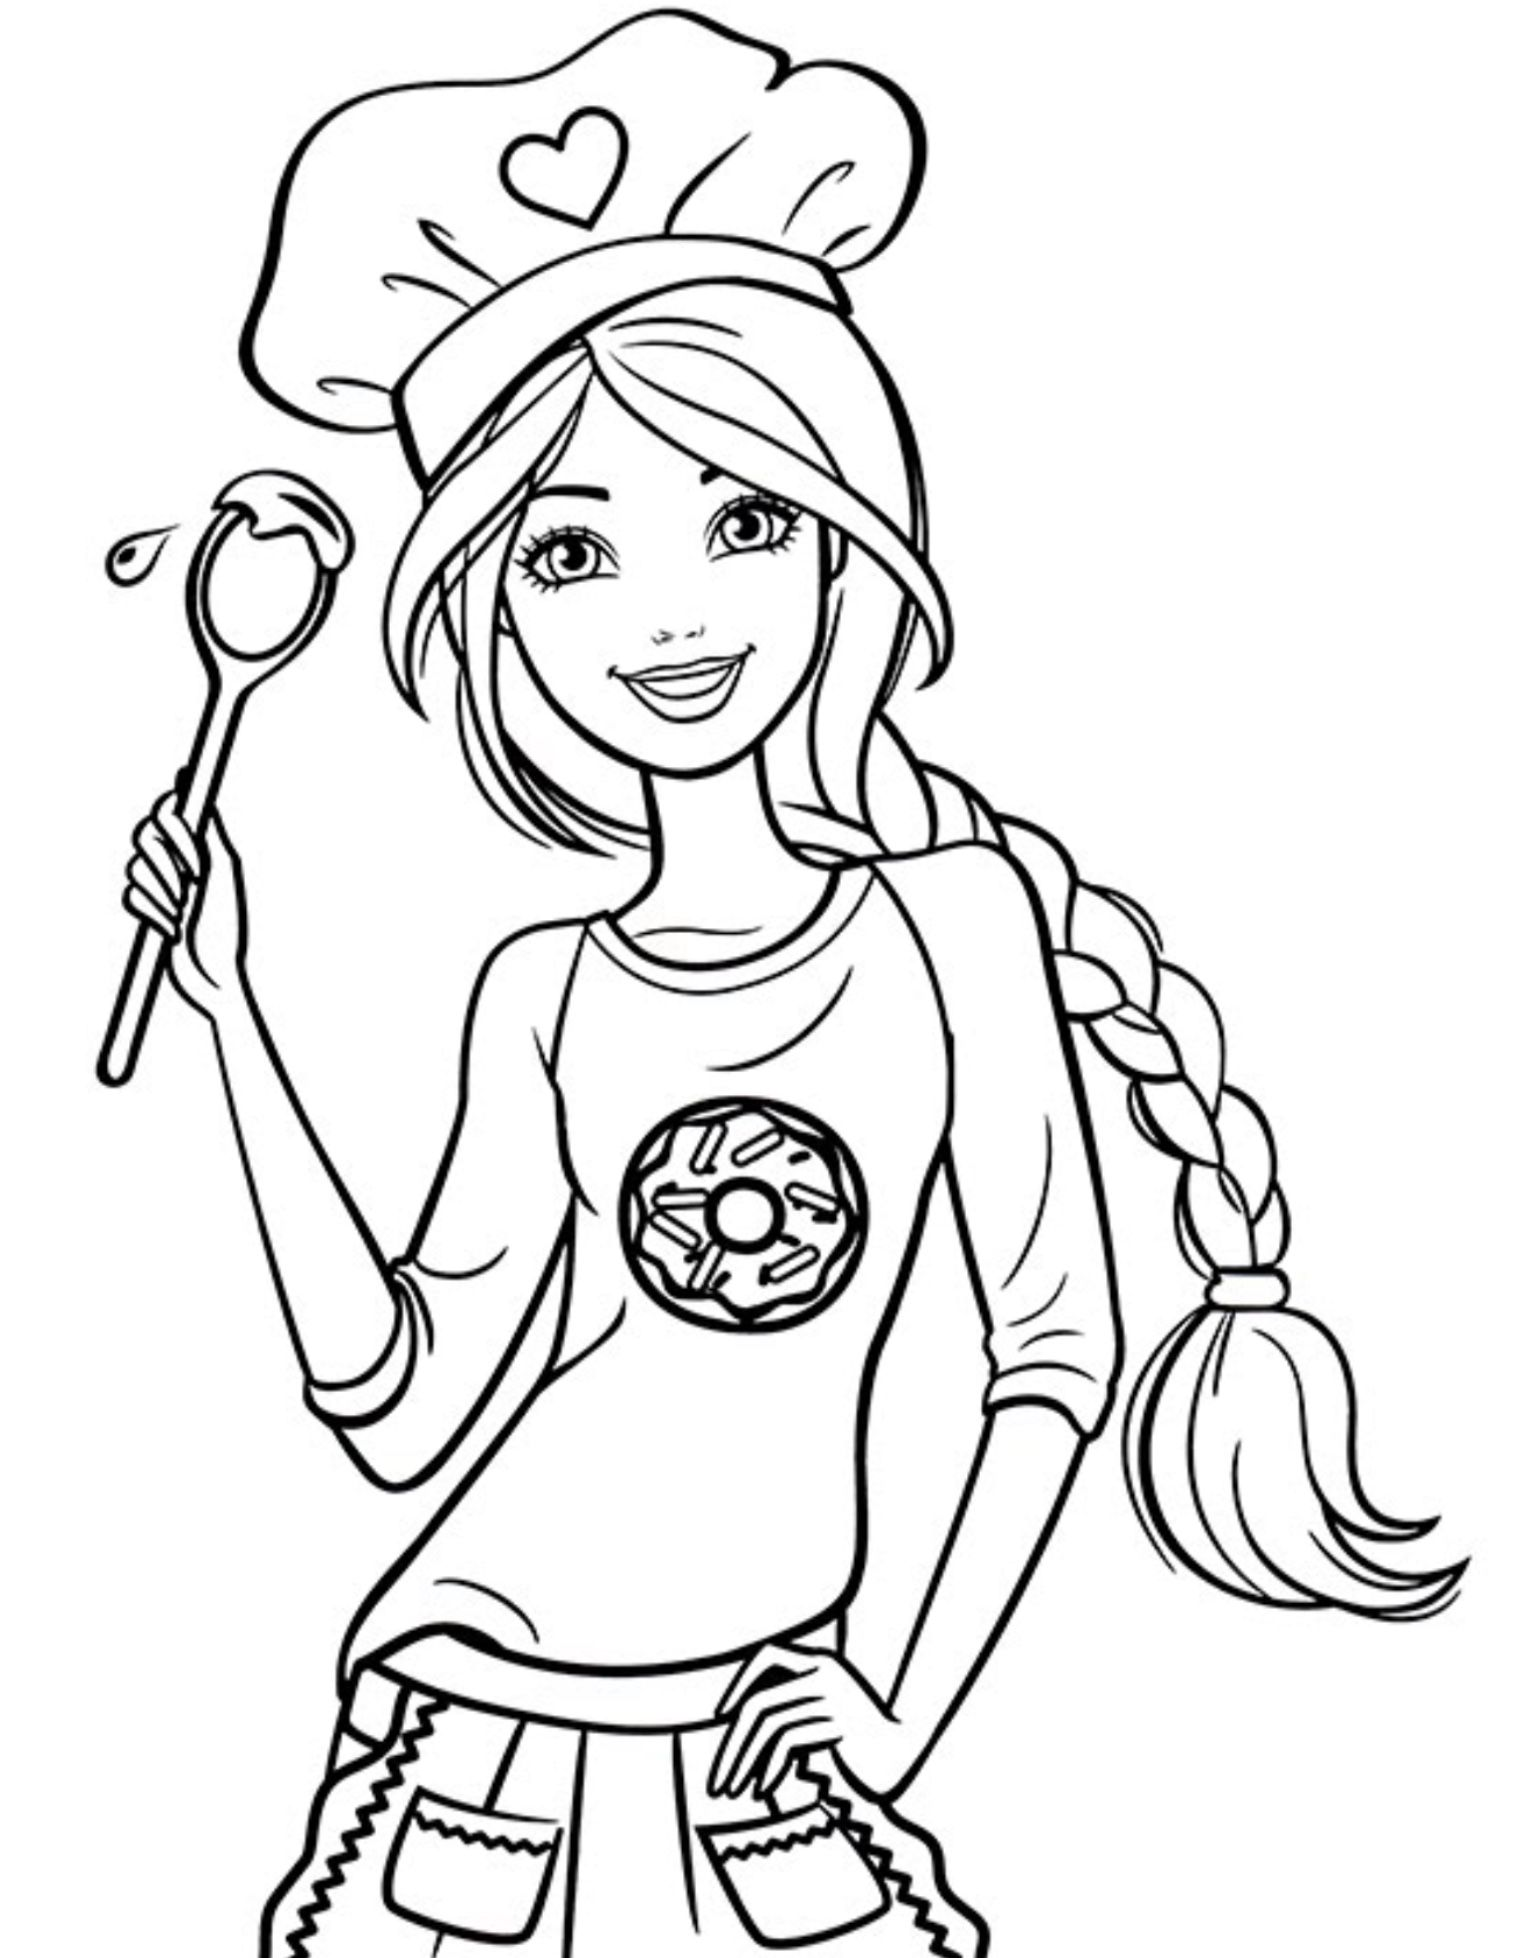 barbie pictures to colour and print coloring pages barbie free printable coloring pages colour pictures and to print barbie